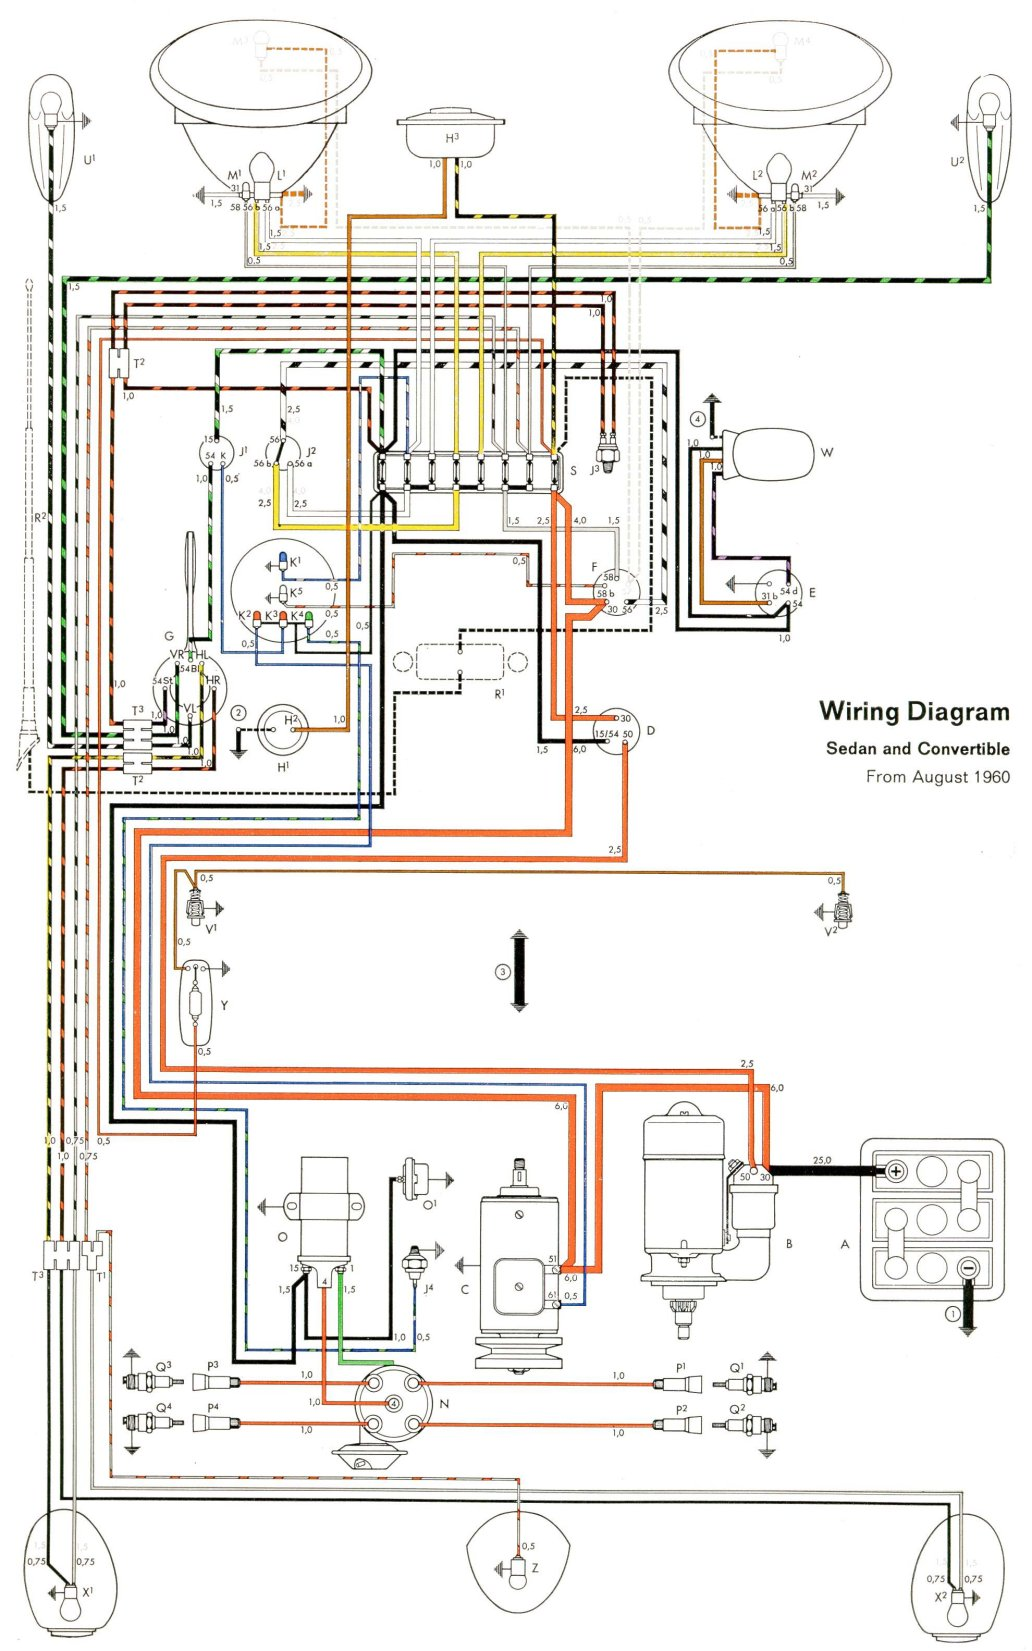 bug_61 thesamba com type 1 wiring diagrams new beetle wiring diagram at bayanpartner.co